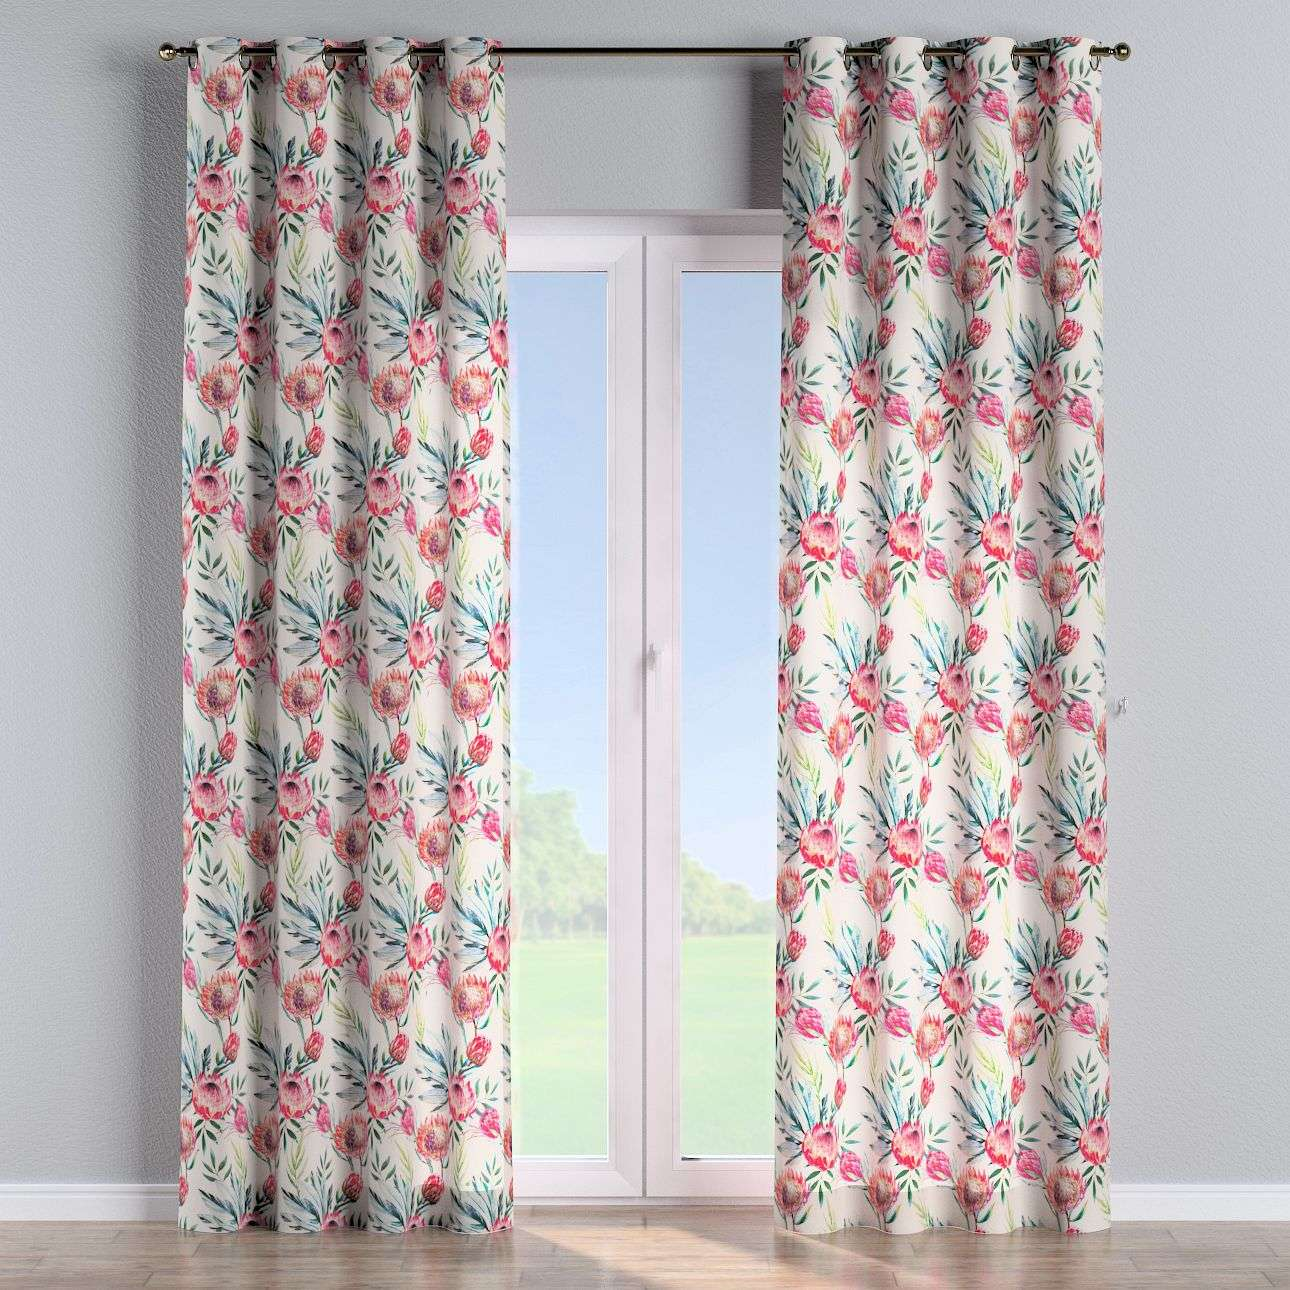 Eyelet curtains 130 x 260 cm (51 x 102 inch) in collection New Art, fabric: 141-59